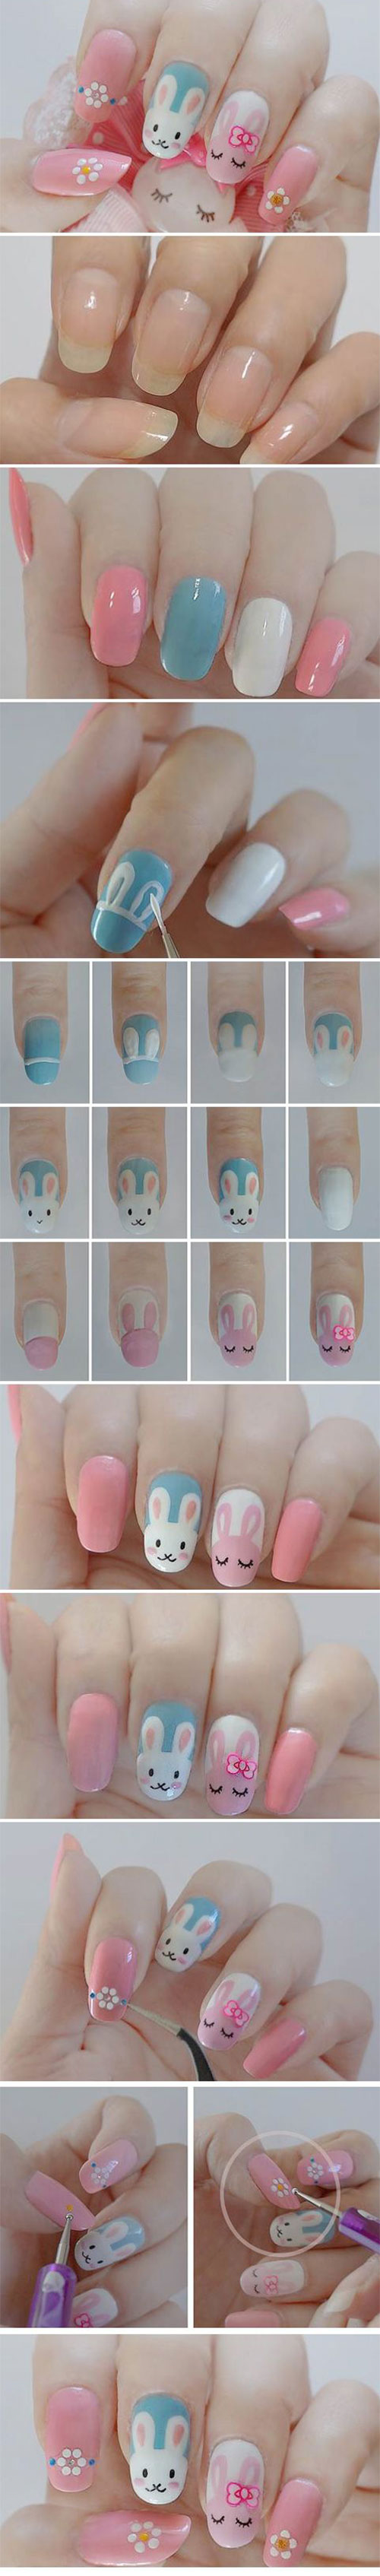 10 Step By Step Easter Nail Art Tutorials For Beginners Learners 2015 9 10 Step By Step Easter Nail Art Tutorials For Beginners & Learners 2015